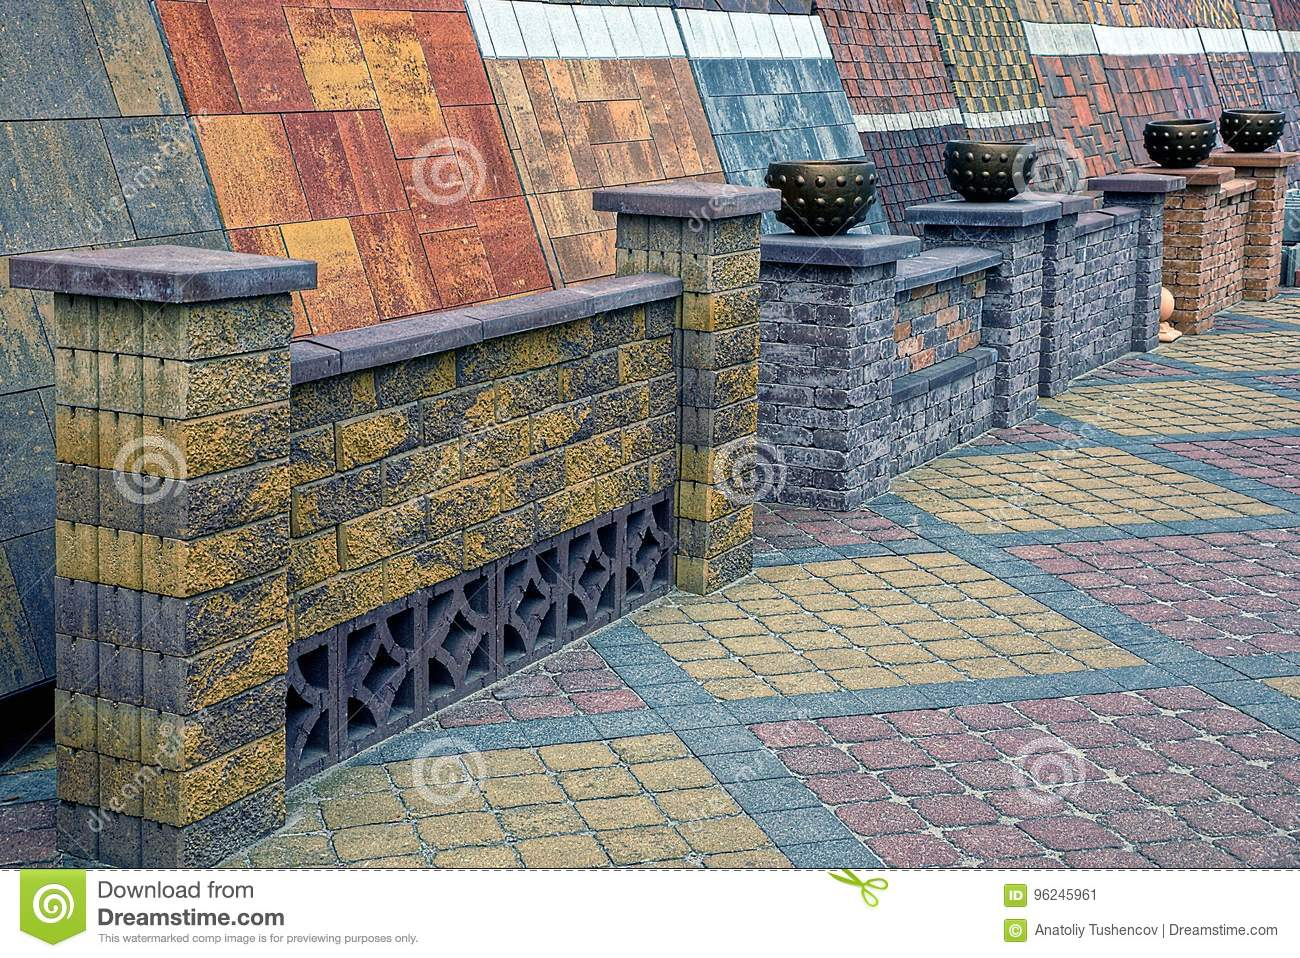 Paving Colored Tiles And Mock-ups Of Brick Fences In The Warehouse